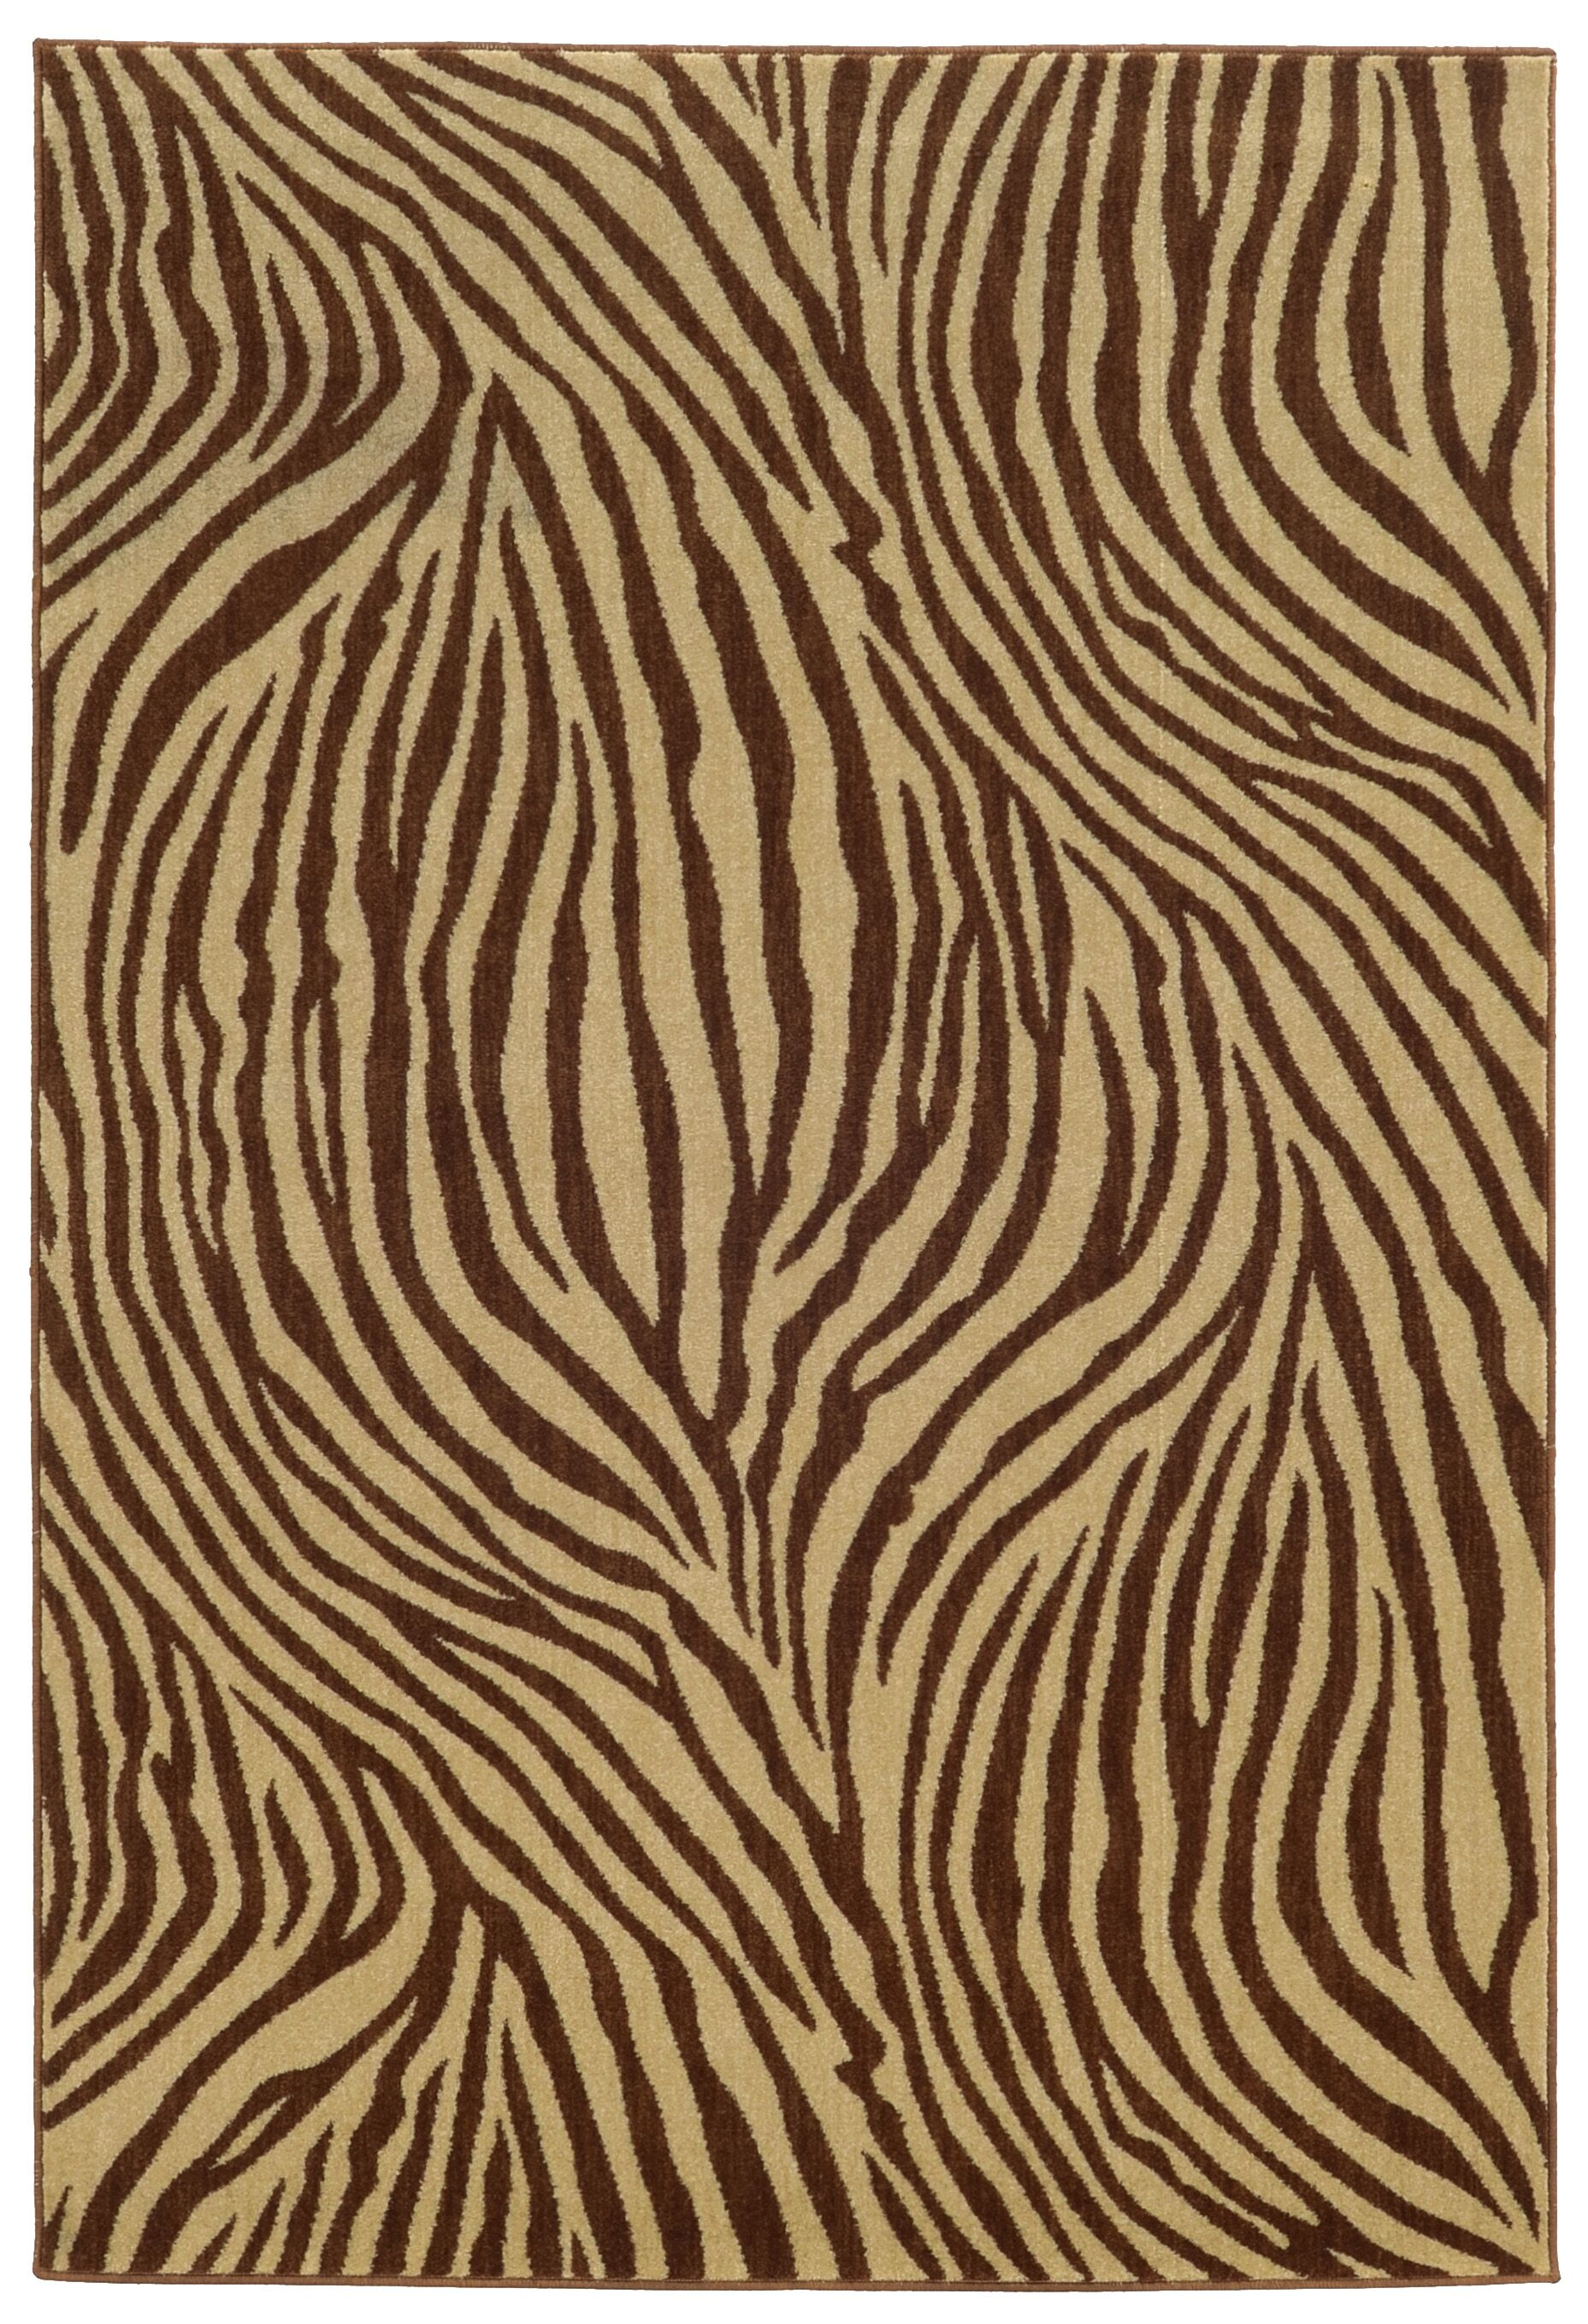 Tommy Bahama Voyage Beige / Brown Abstract Rug Rug Size: Rectangle 5'3